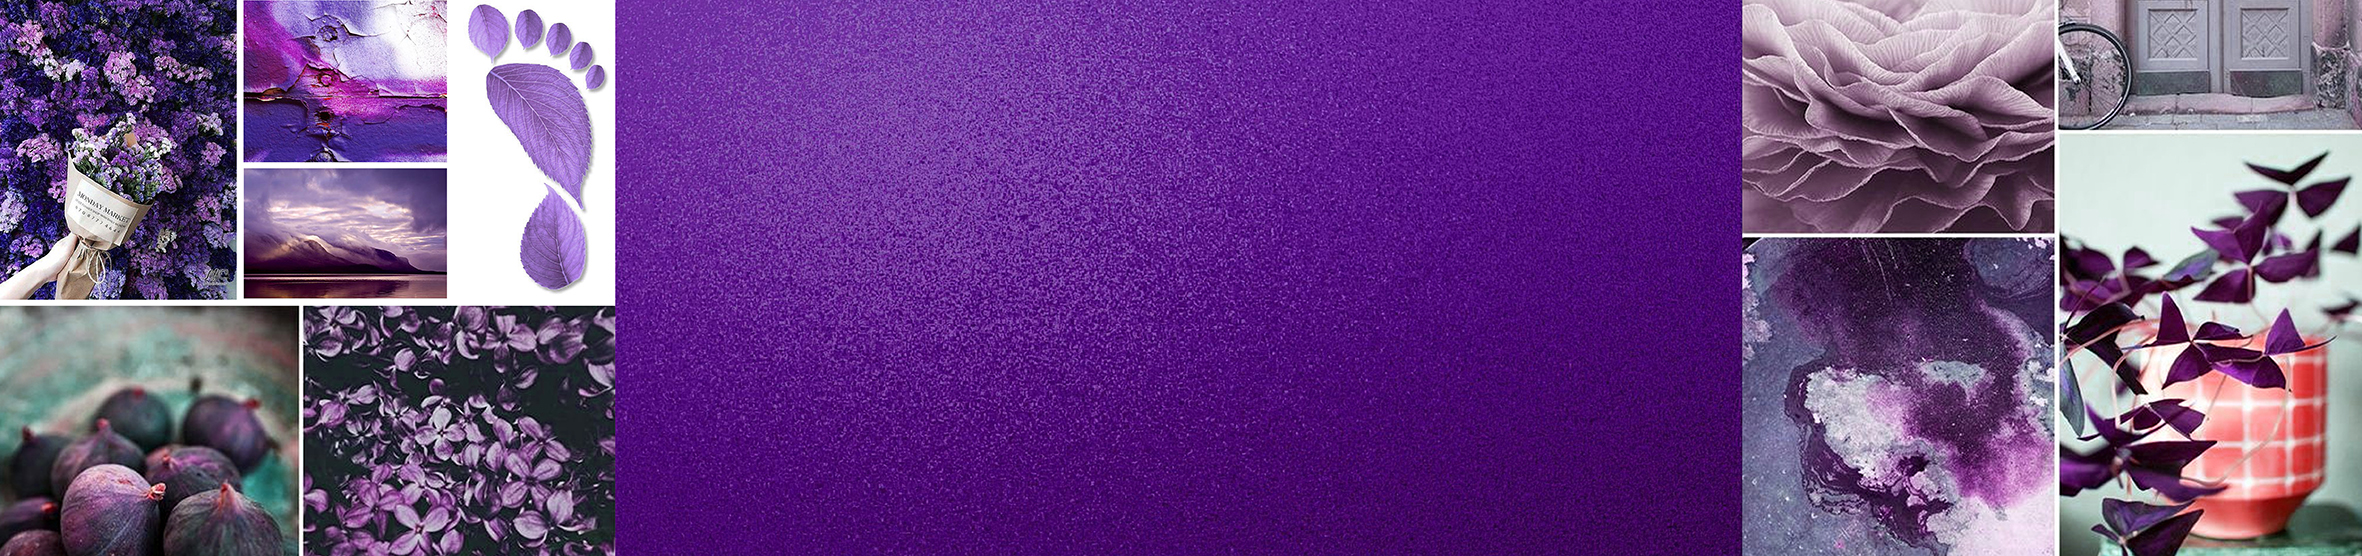 The Pantone Color for 2018 - The future is purple